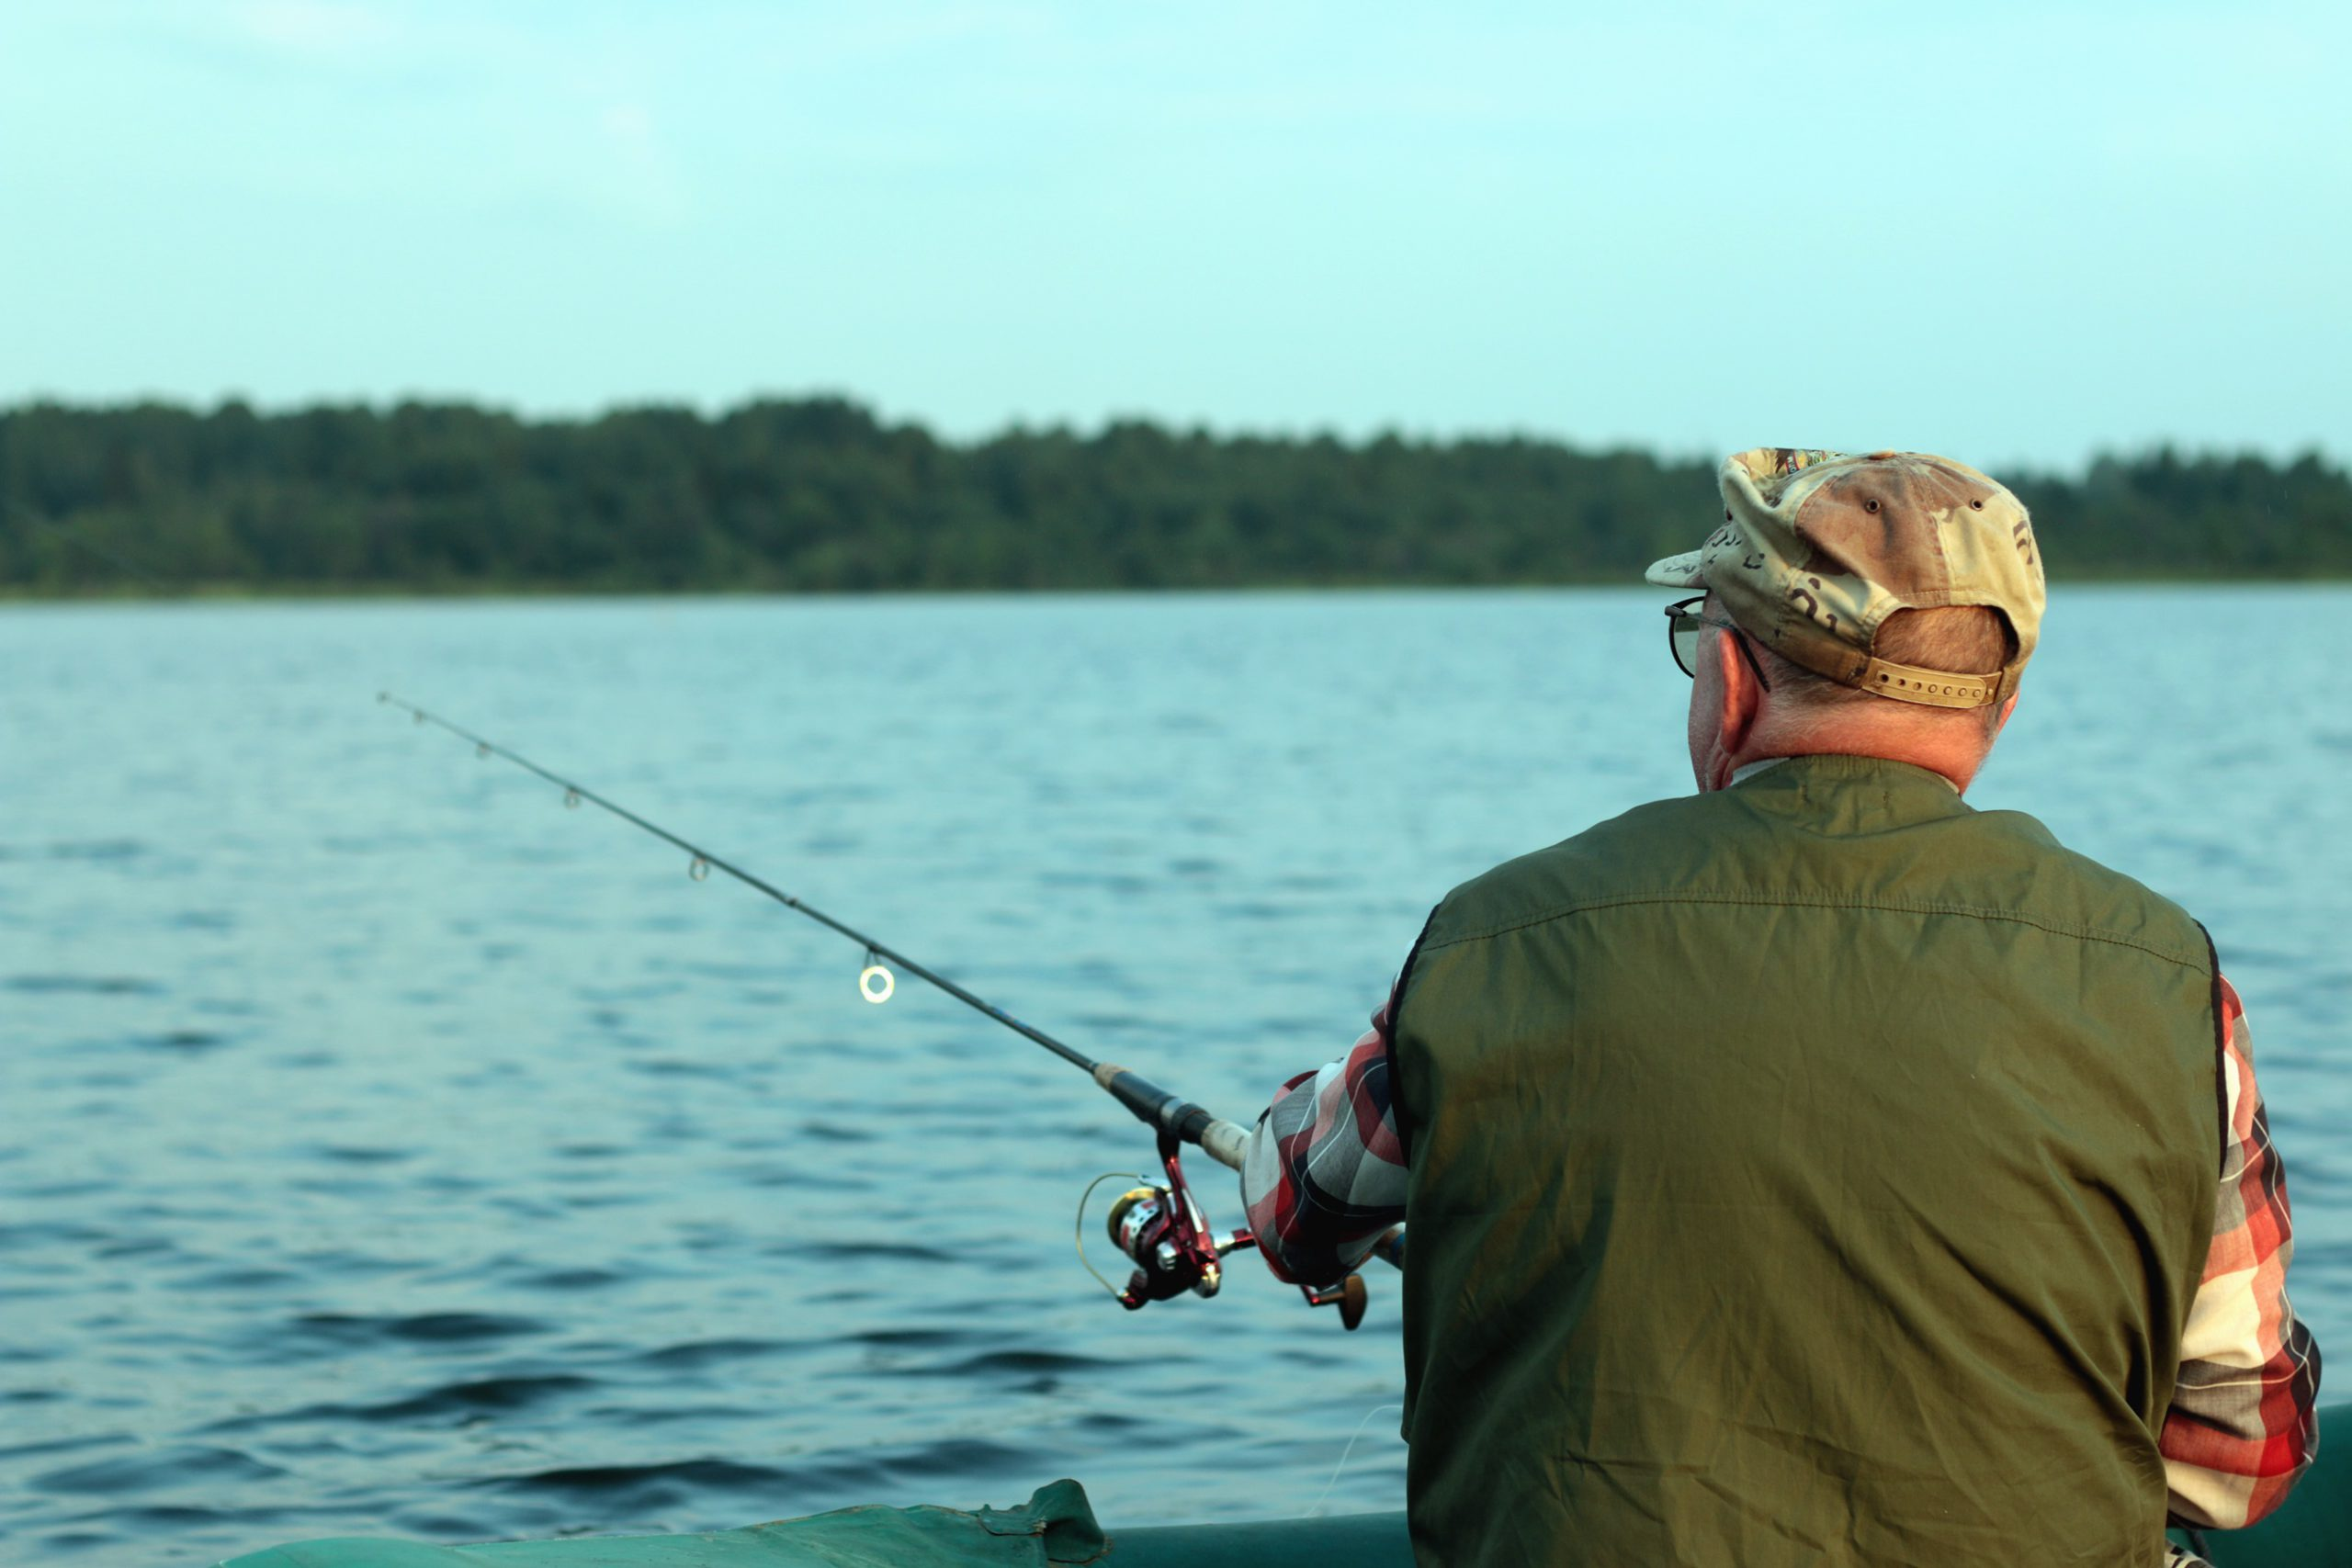 Man casting a spinning rod